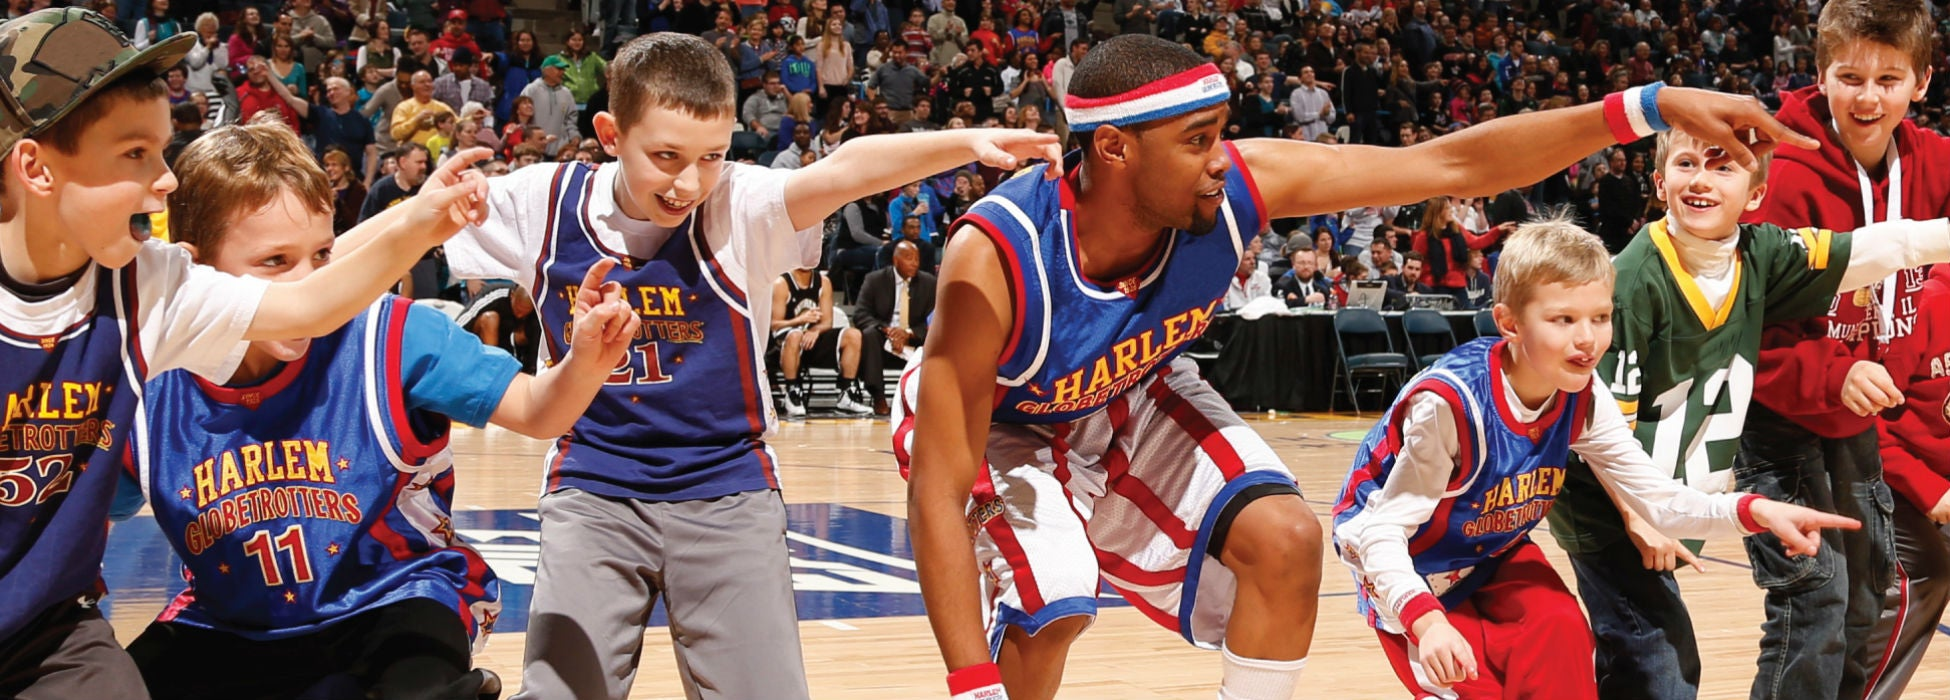 The Globetrotters The Globetrotters